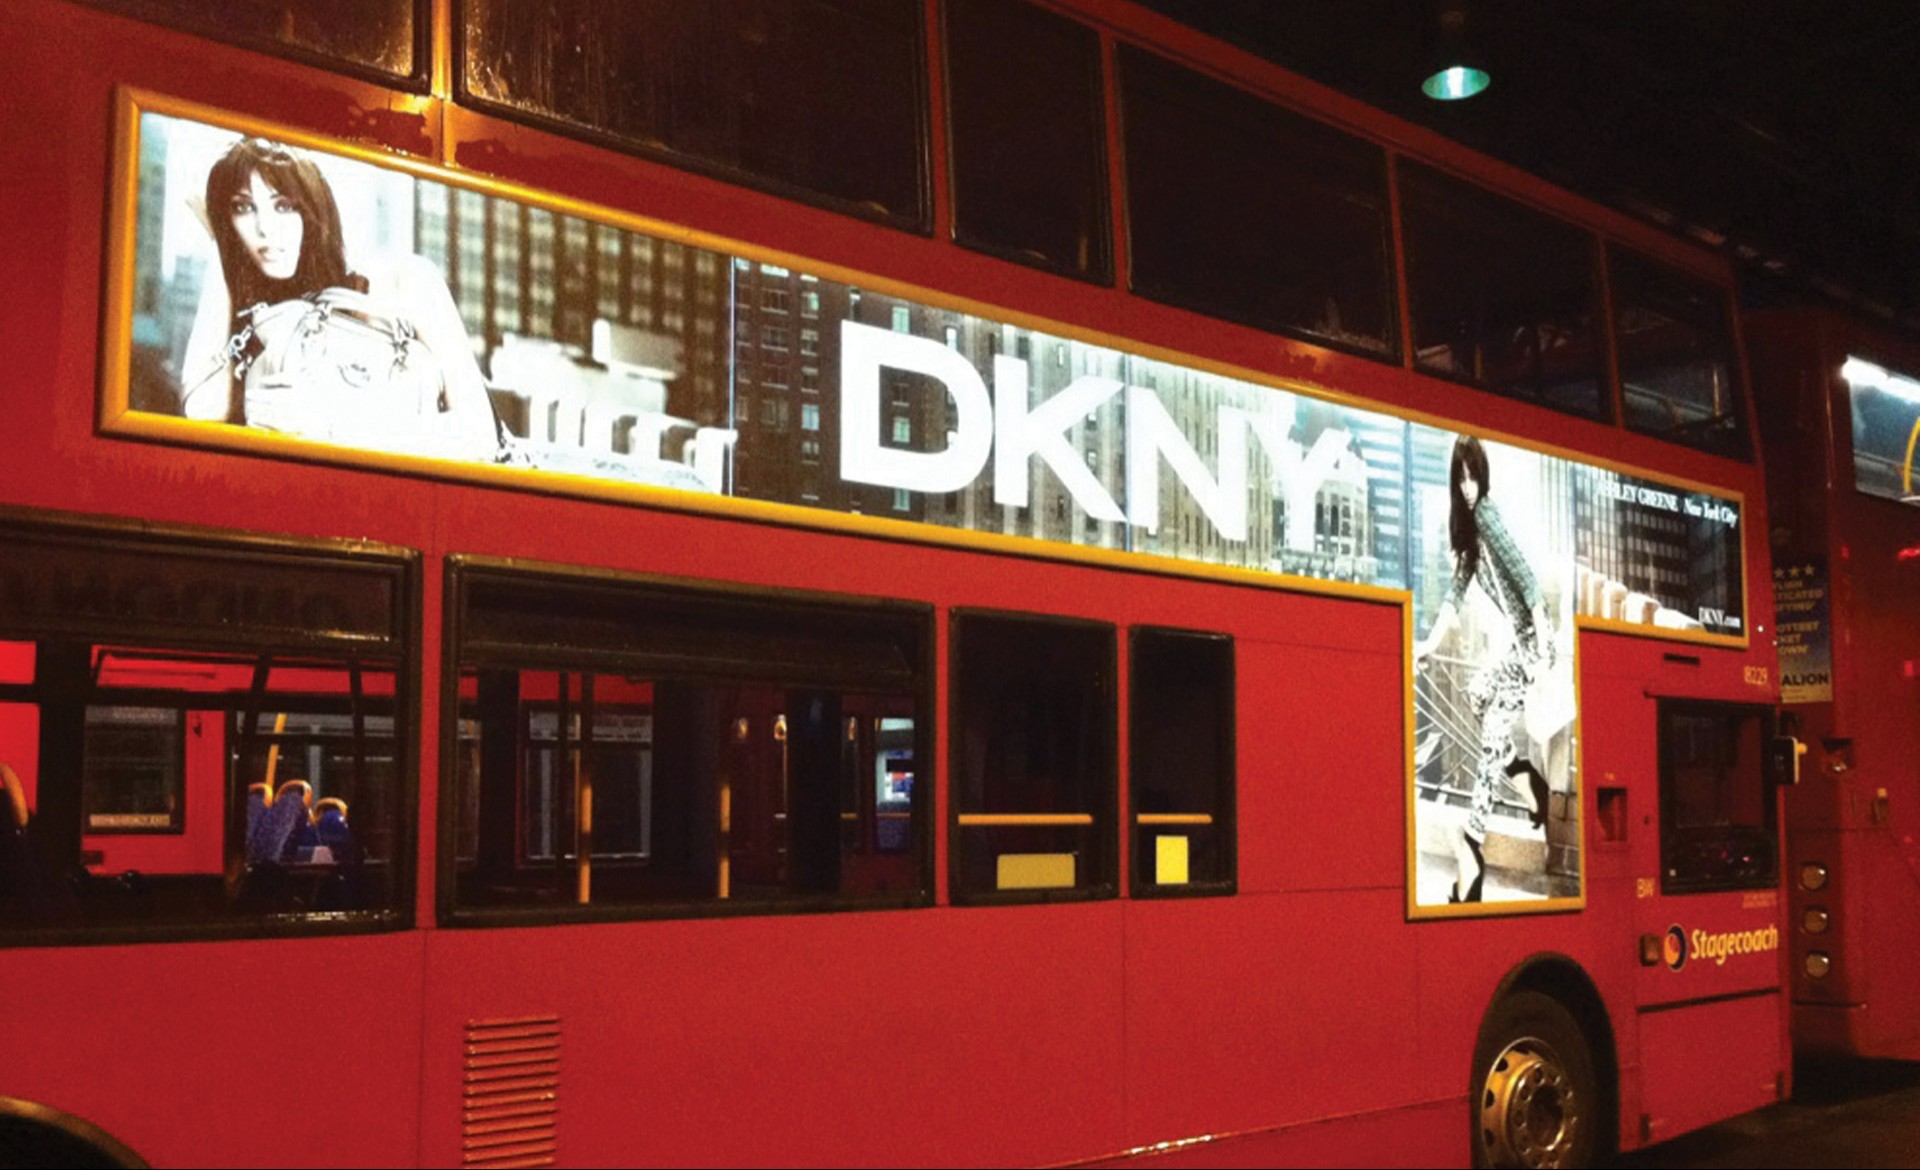 DKNY Continue the trend....